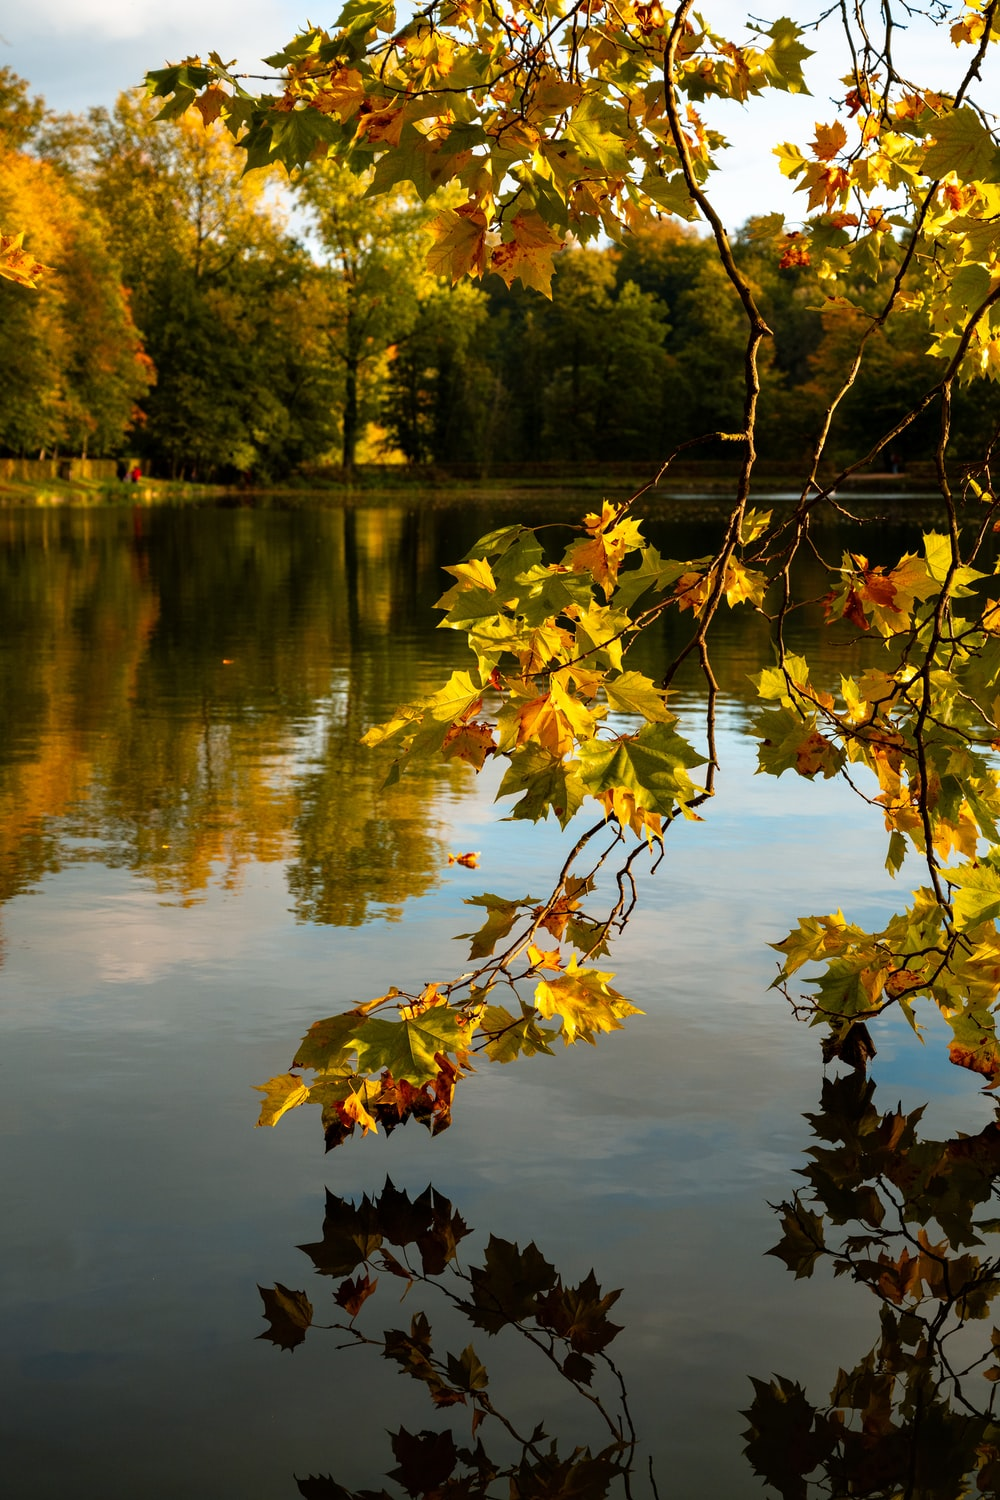 green and yellow leaves on body of water during daytime